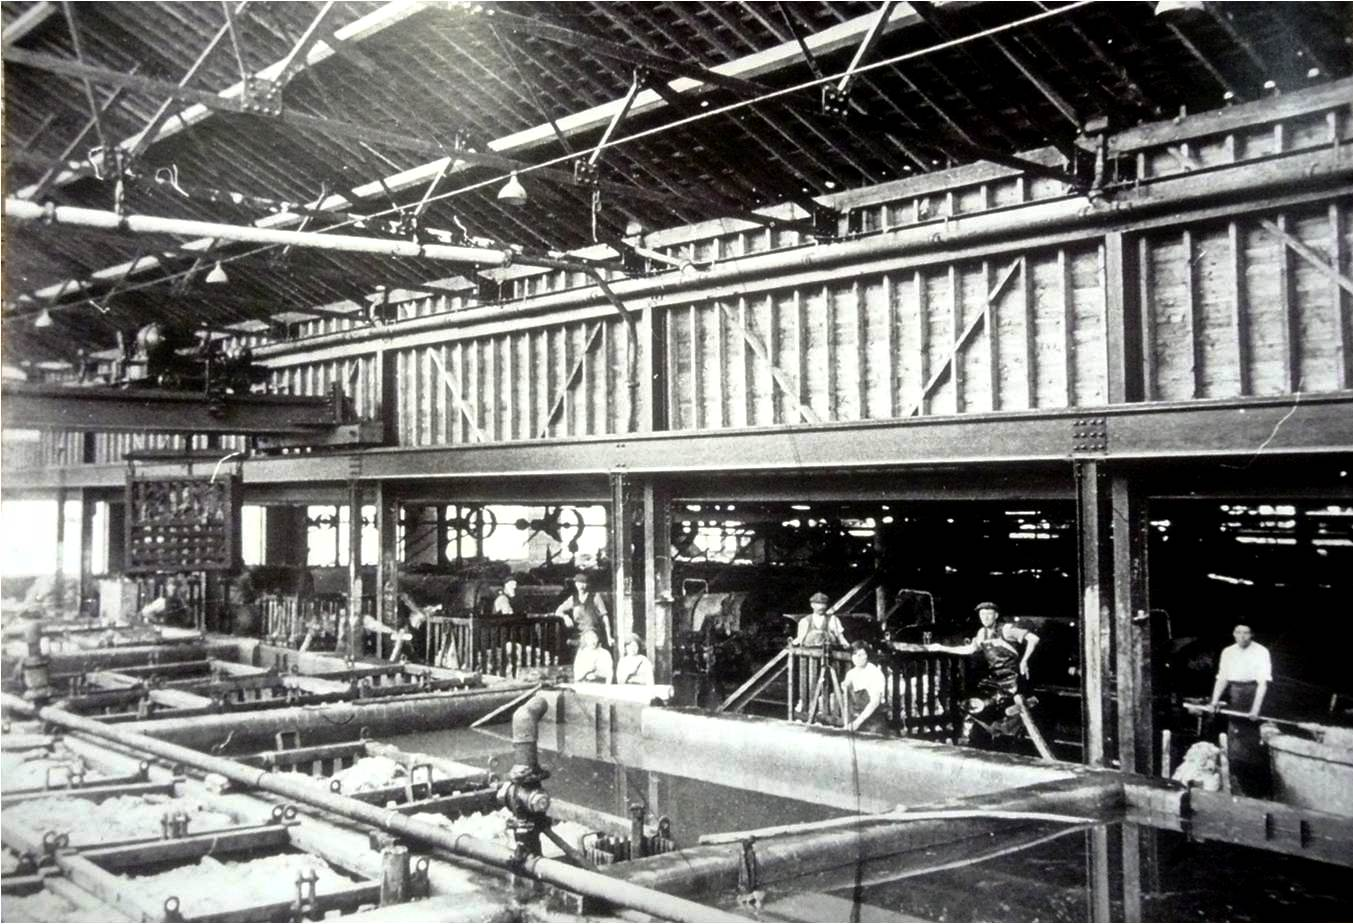 A view of Pavlova leather factory. The problems with their waste disposal continued and in the 1950s, lagoons were built outside the town to help accommodate this.